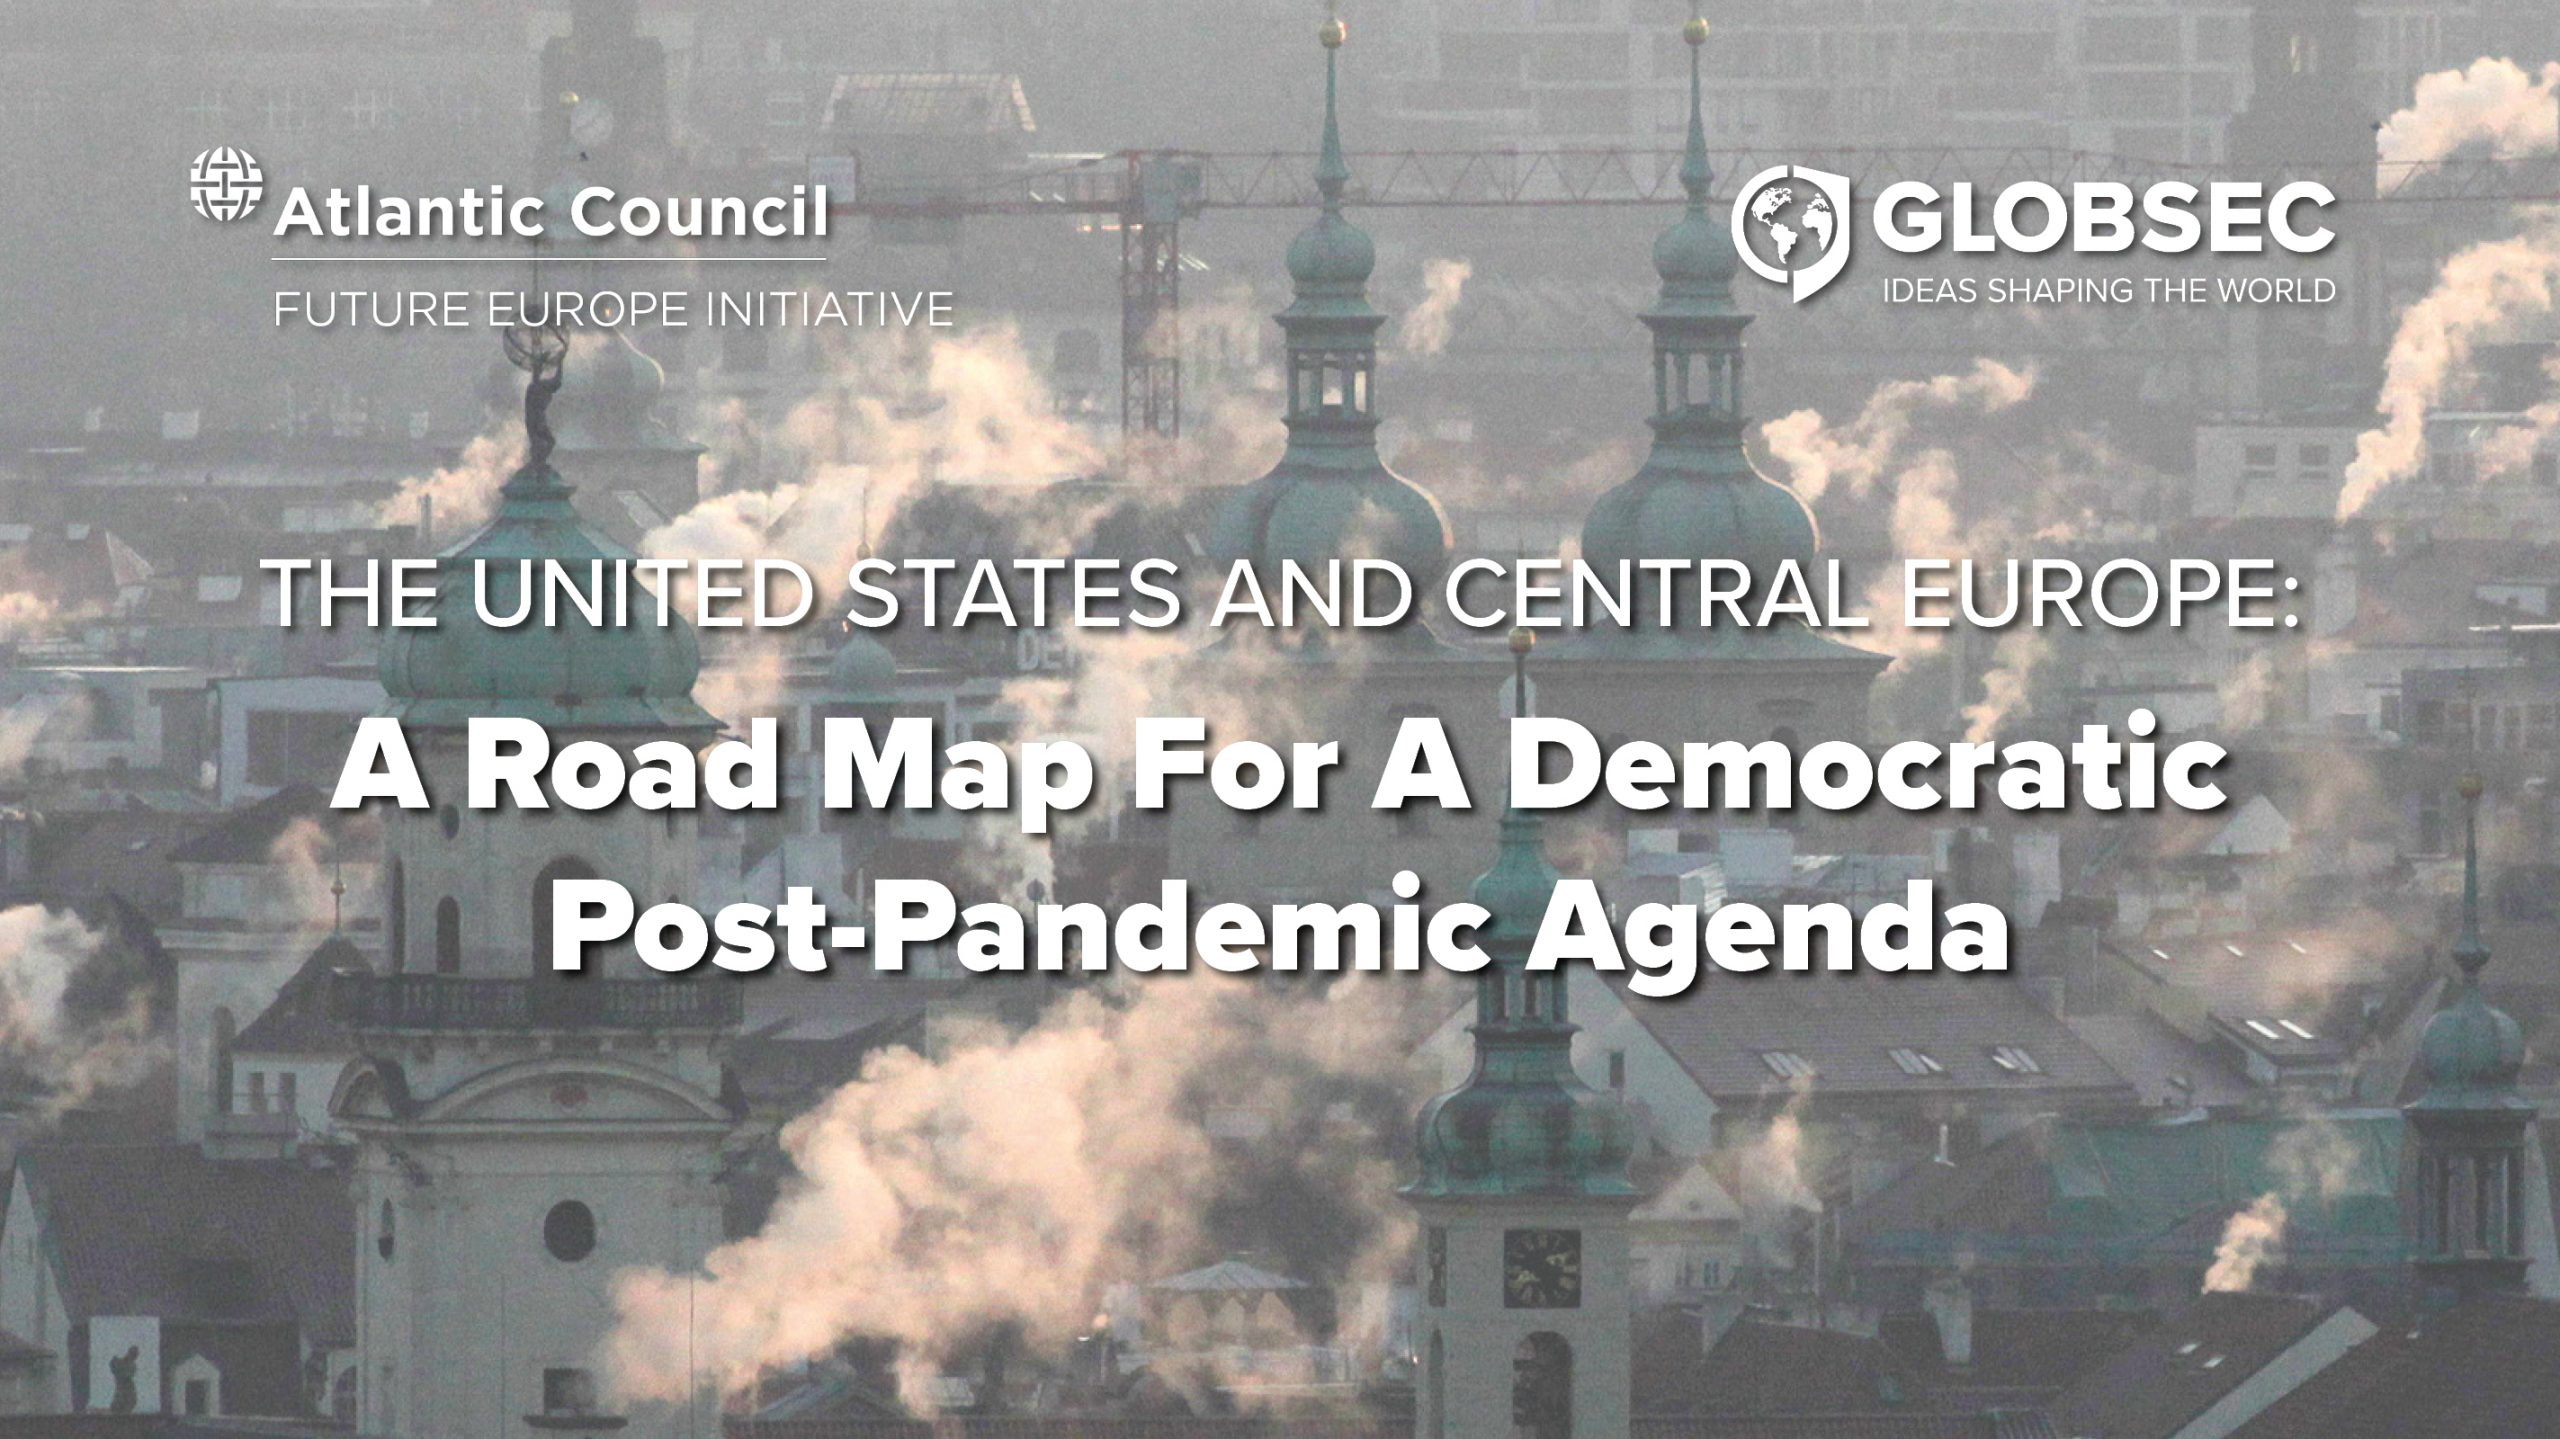 THE UNITED STATES AND CENTRAL EUROPE - A Road Map For A Democratic Post-Pandemic Agenda